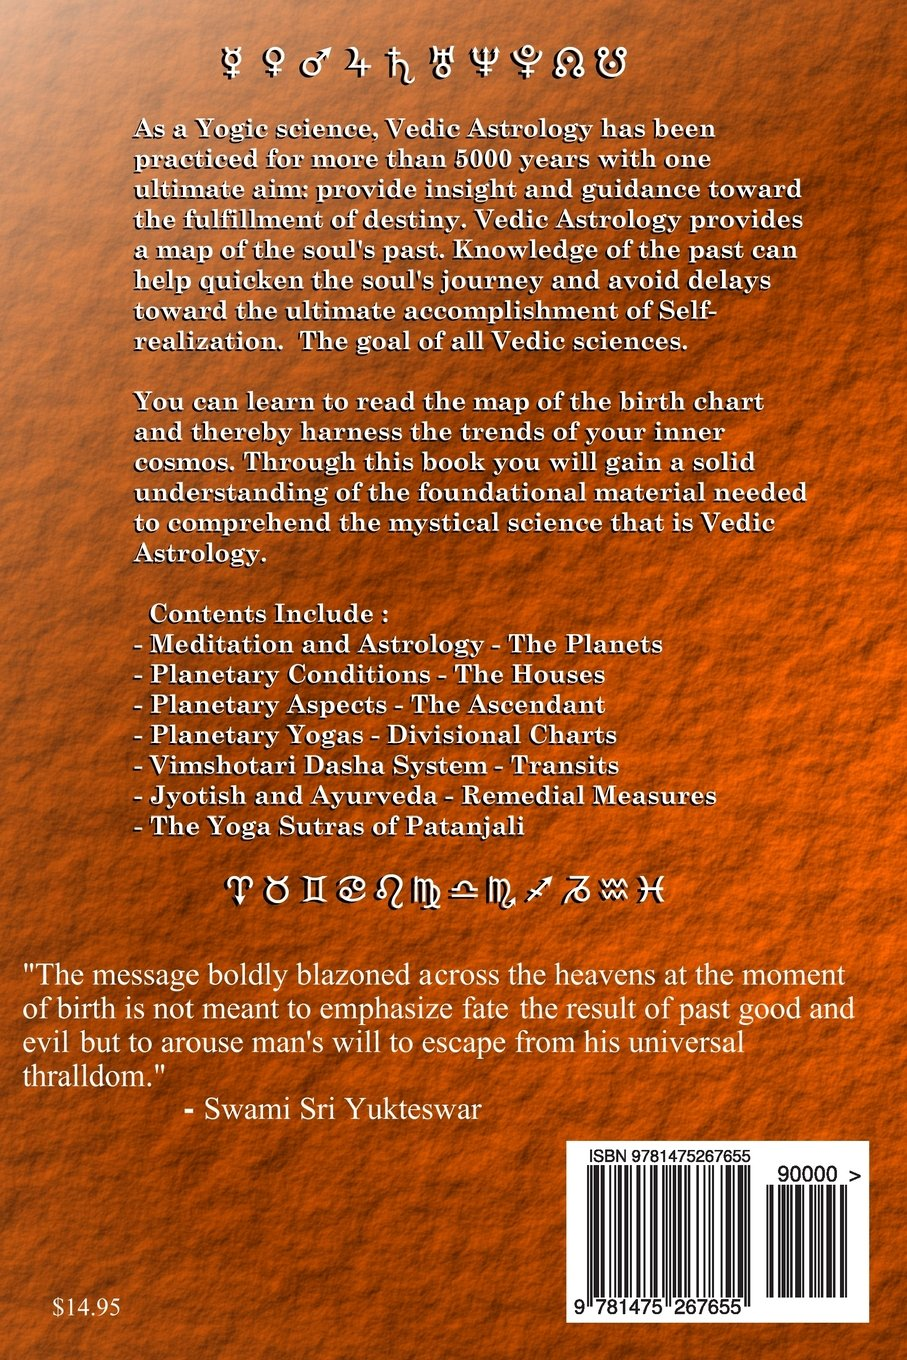 The art and science of vedic astrology the foundation course the art and science of vedic astrology the foundation course volume 1 w ryan kurczak richard fish 9781475267655 amazon books geenschuldenfo Images